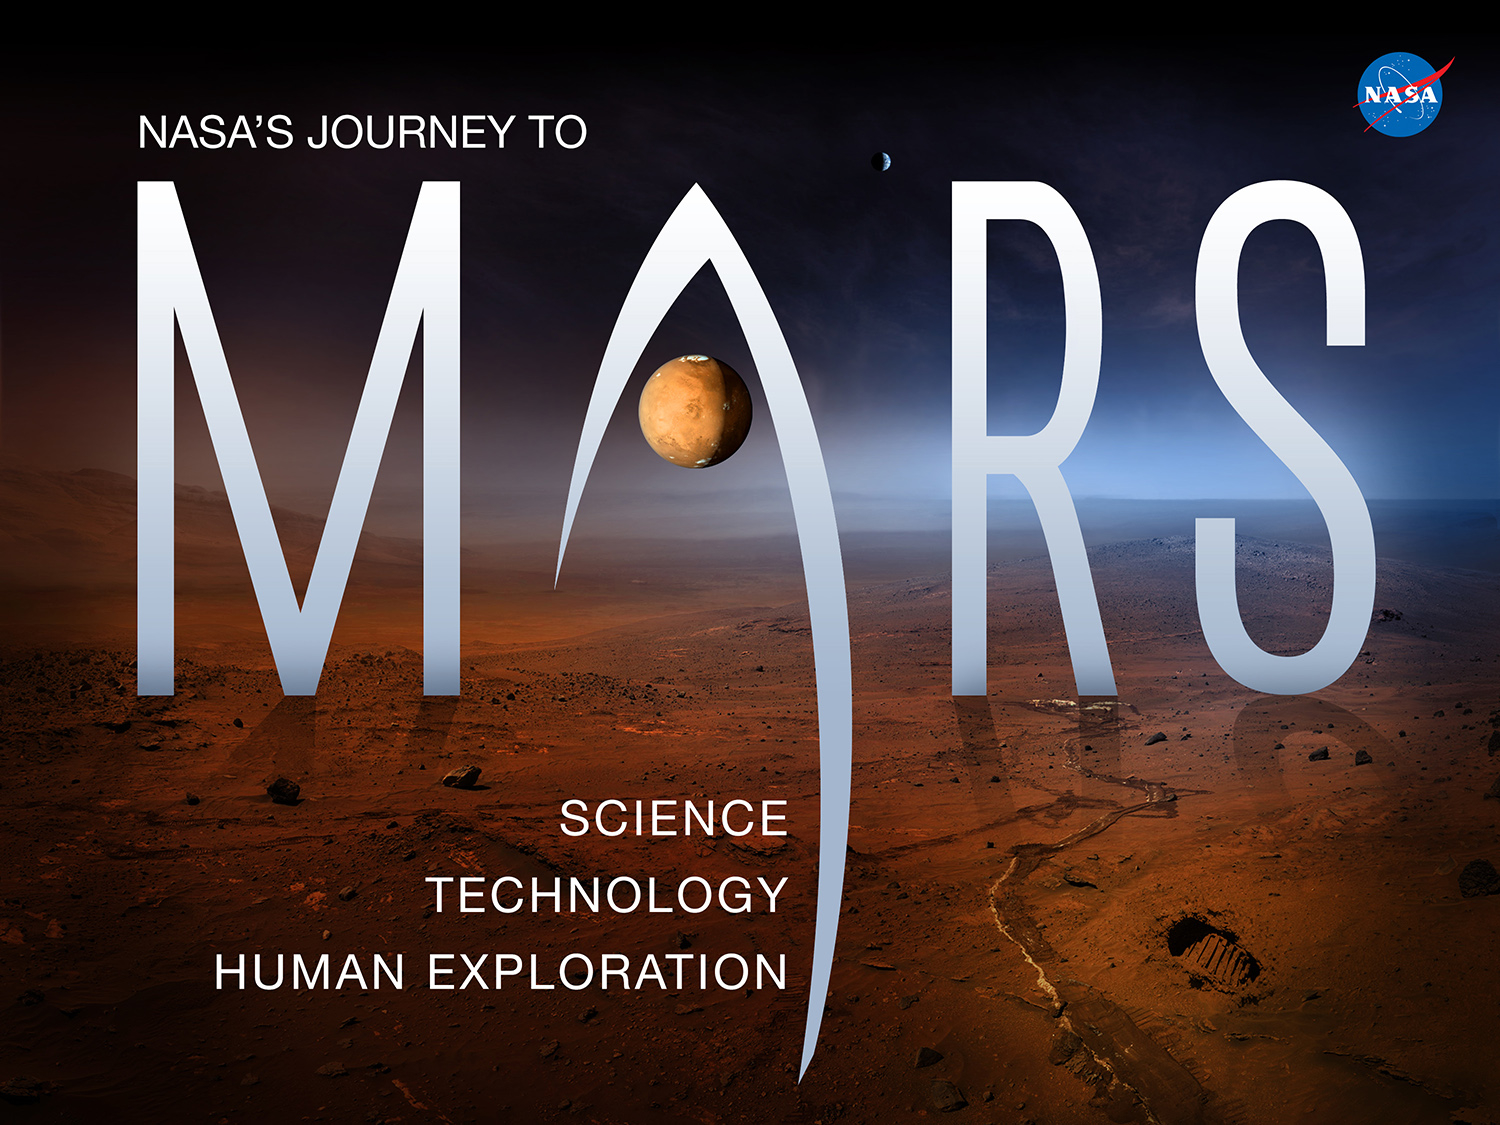 journey to mars museum kit featured products: presentations, Presentation templates